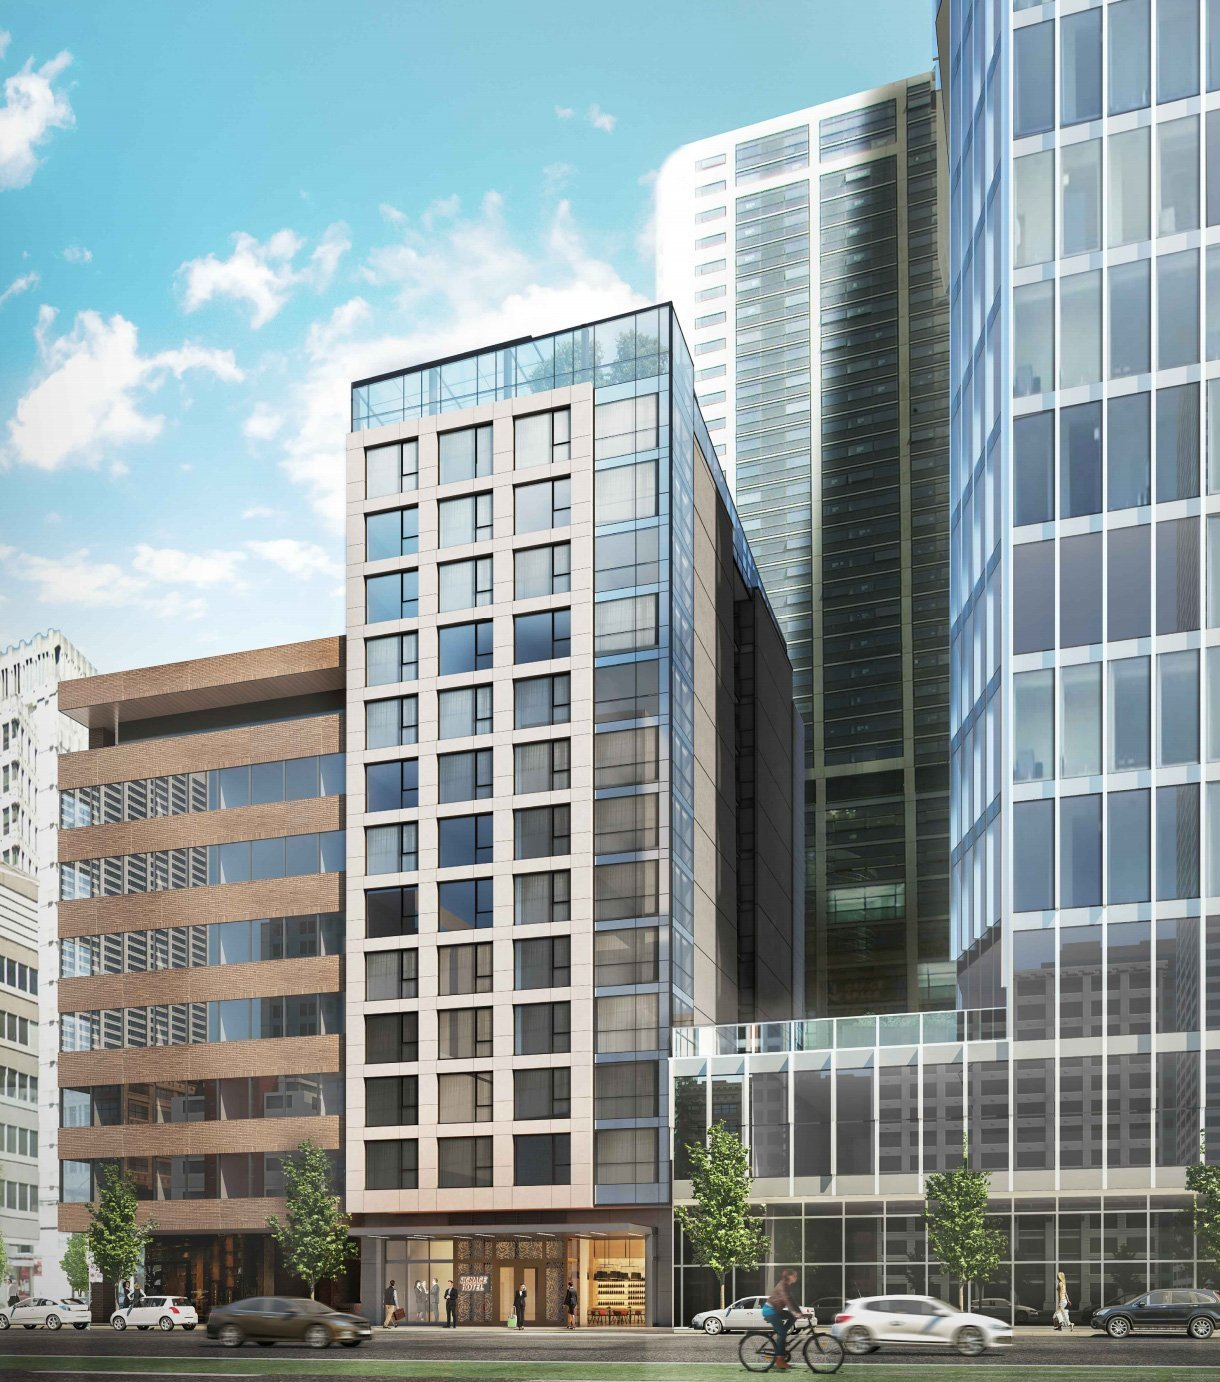 New Executive Group hotel in downtown Vancouver approved